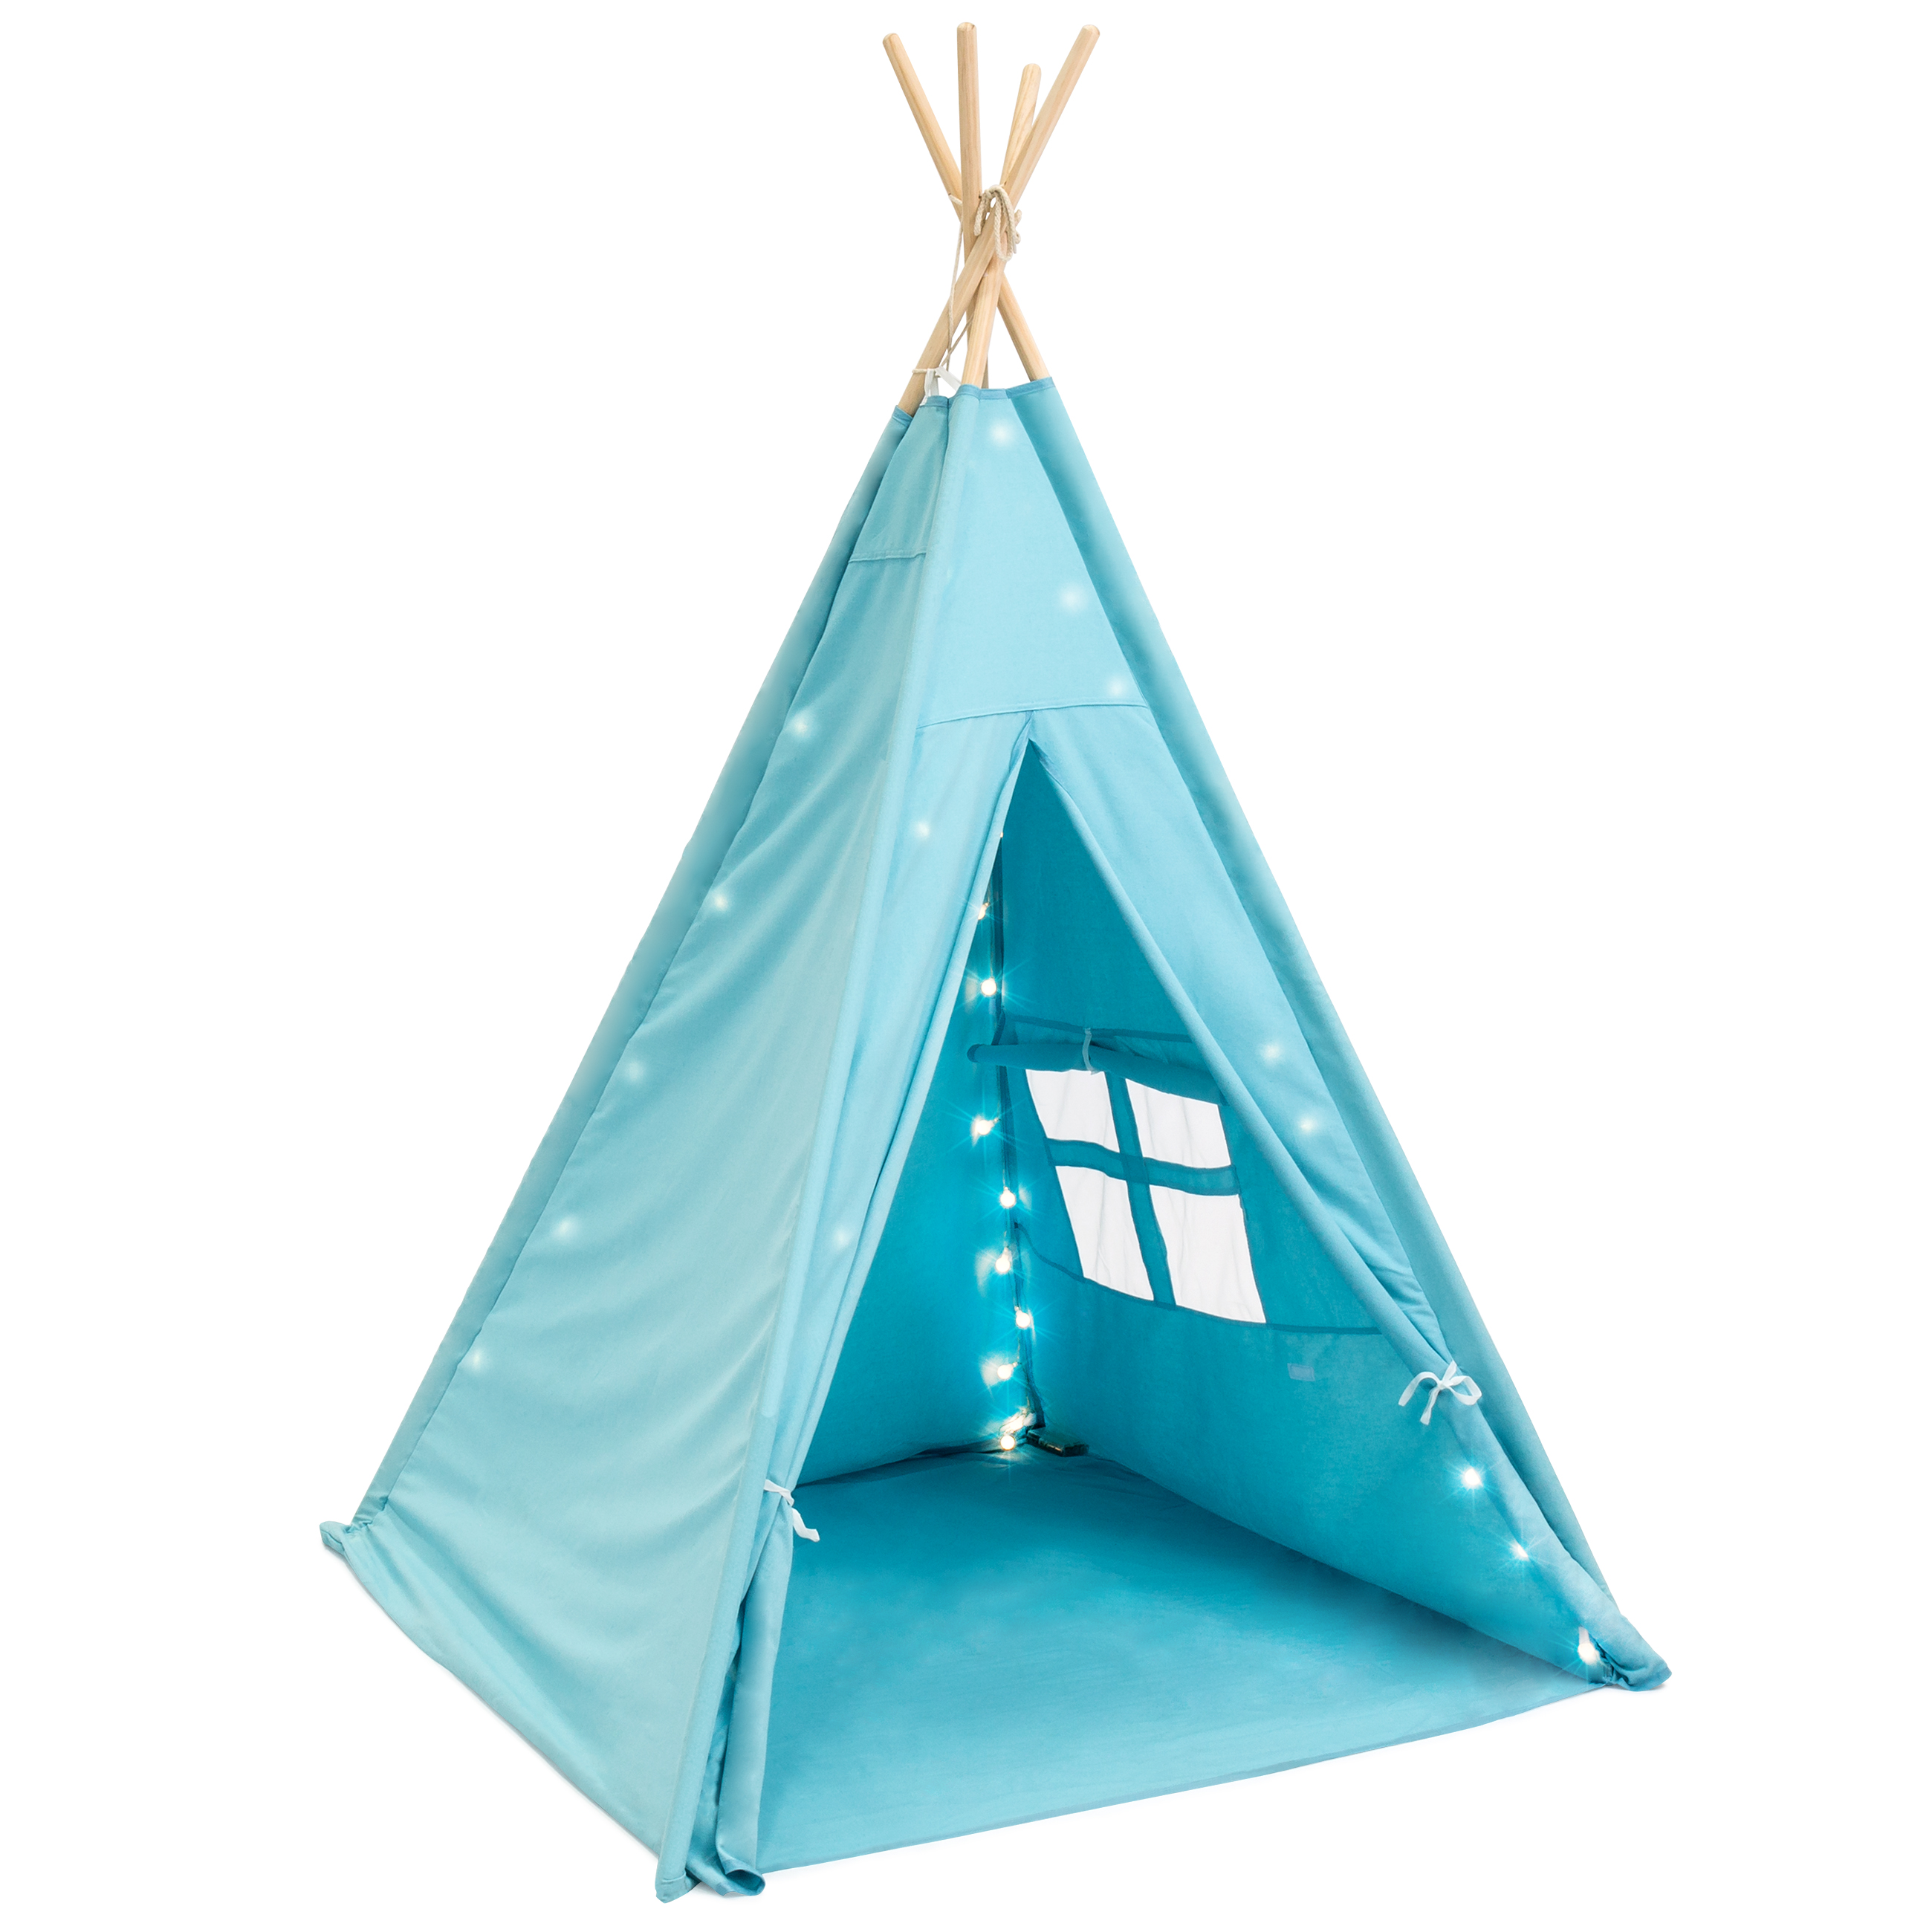 Best Choice Products 6ft Light Up Teepee Play Tent Kids Indian Canvas Playhouse Dome w/ Carrying Bag - Light Blue